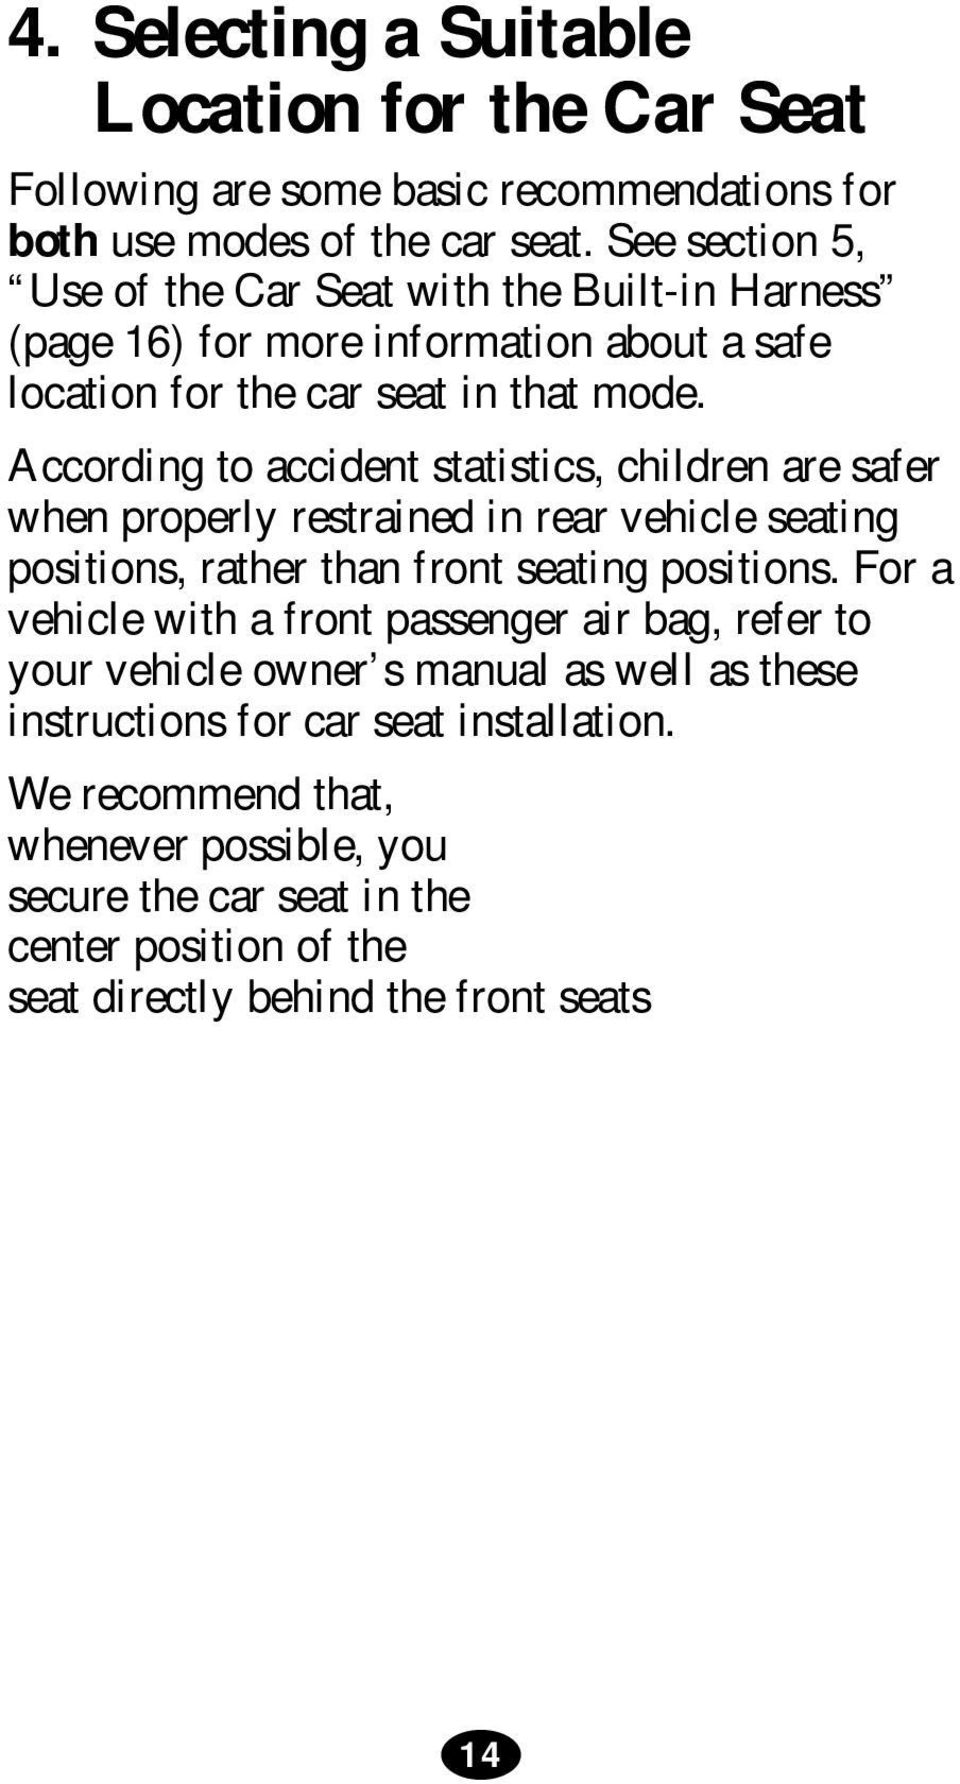 According to accident statistics, children are safer when properly restrained in rear vehicle seating positions, rather than front seating positions.